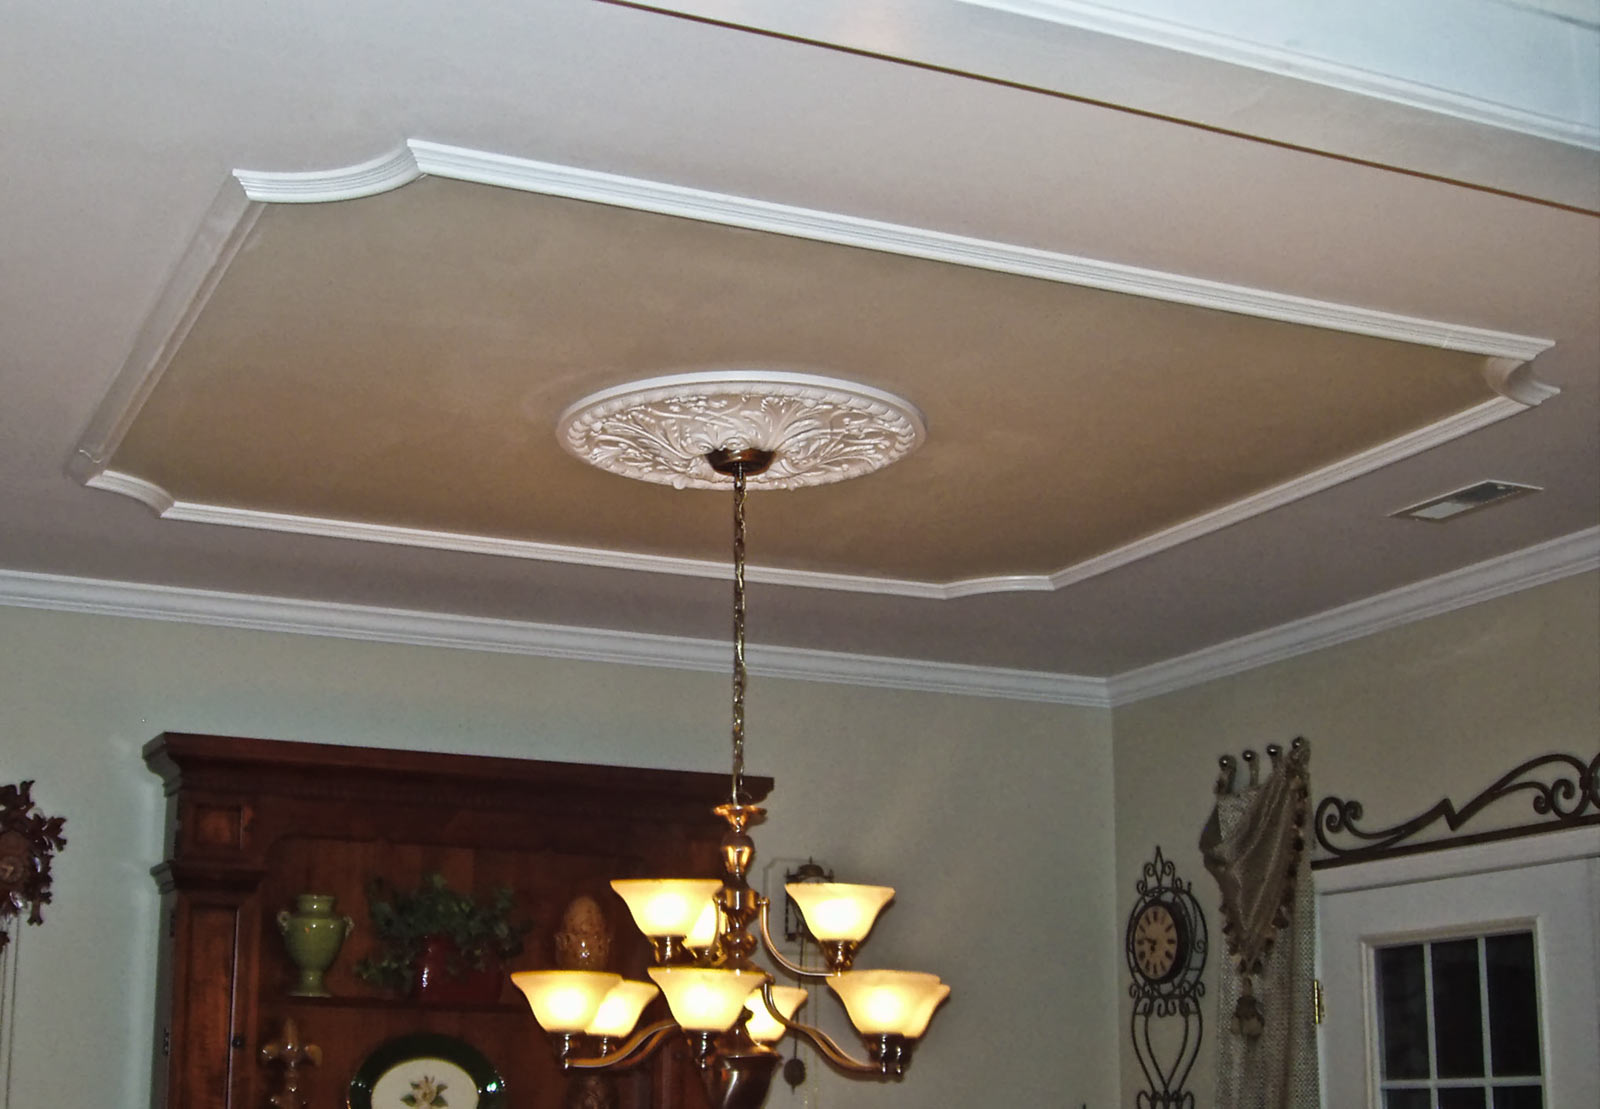 Wr 9093 Ceiling Relief Set